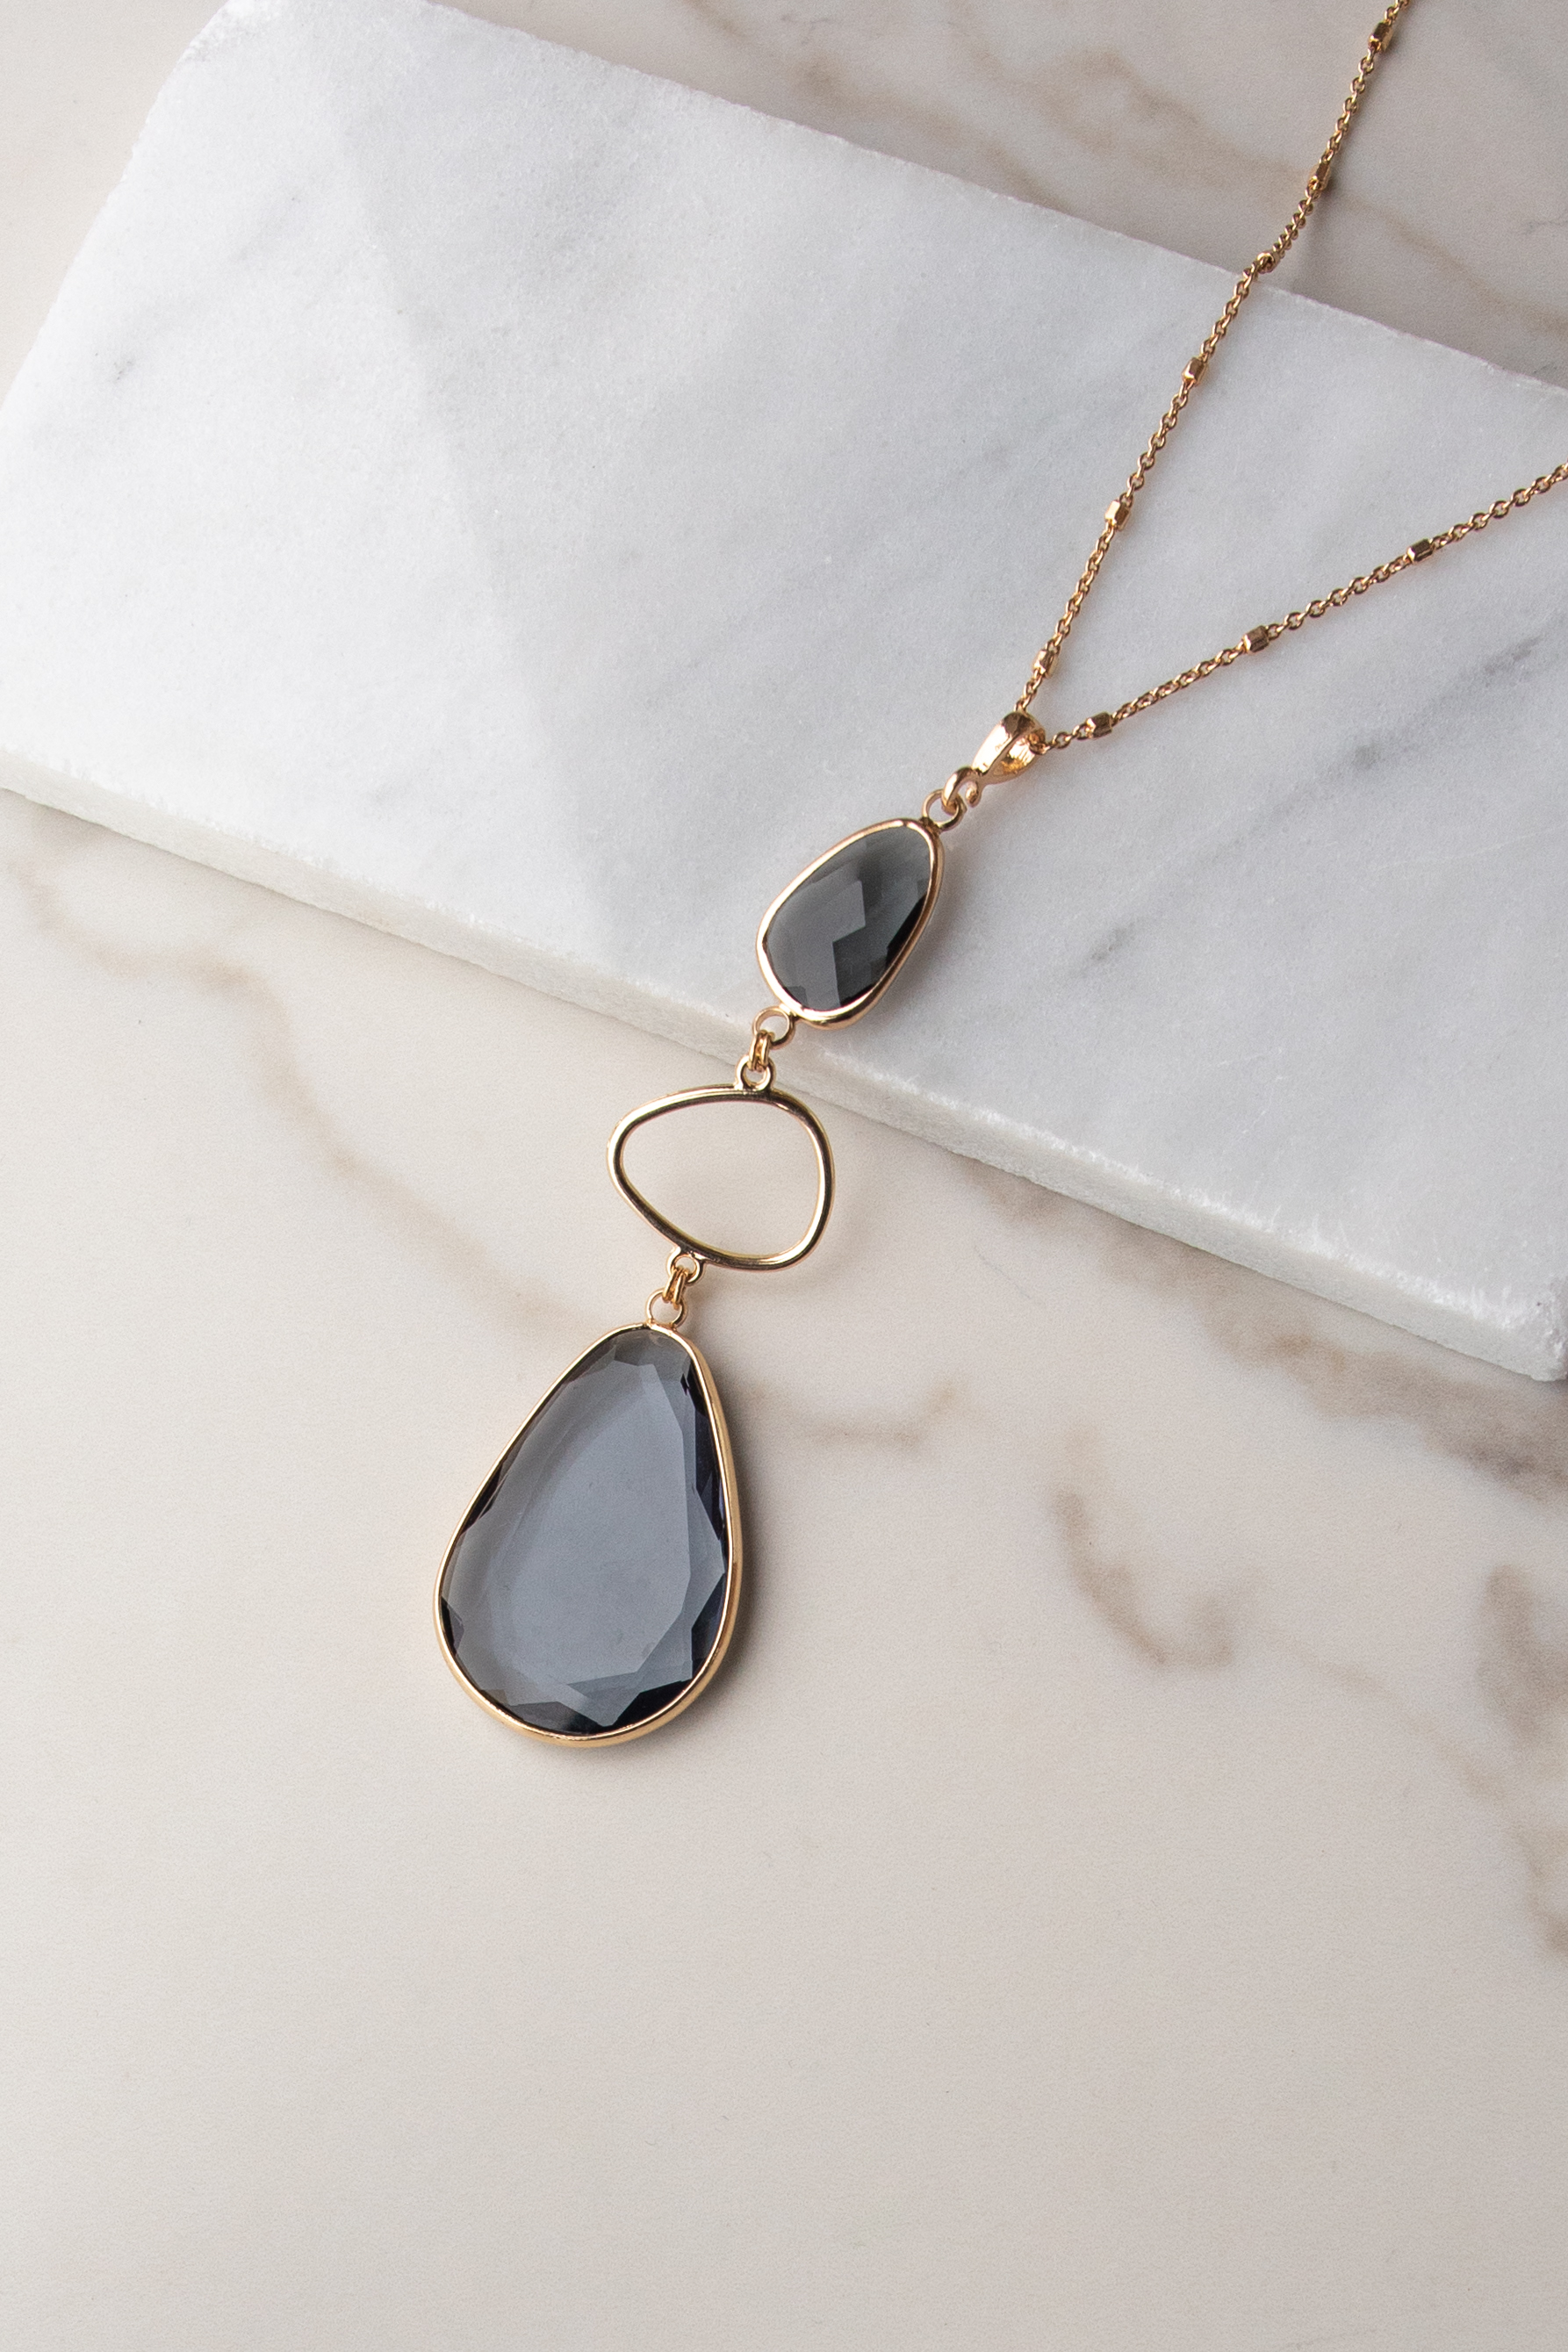 Gold Long Necklace with Teardrop Crystal Details